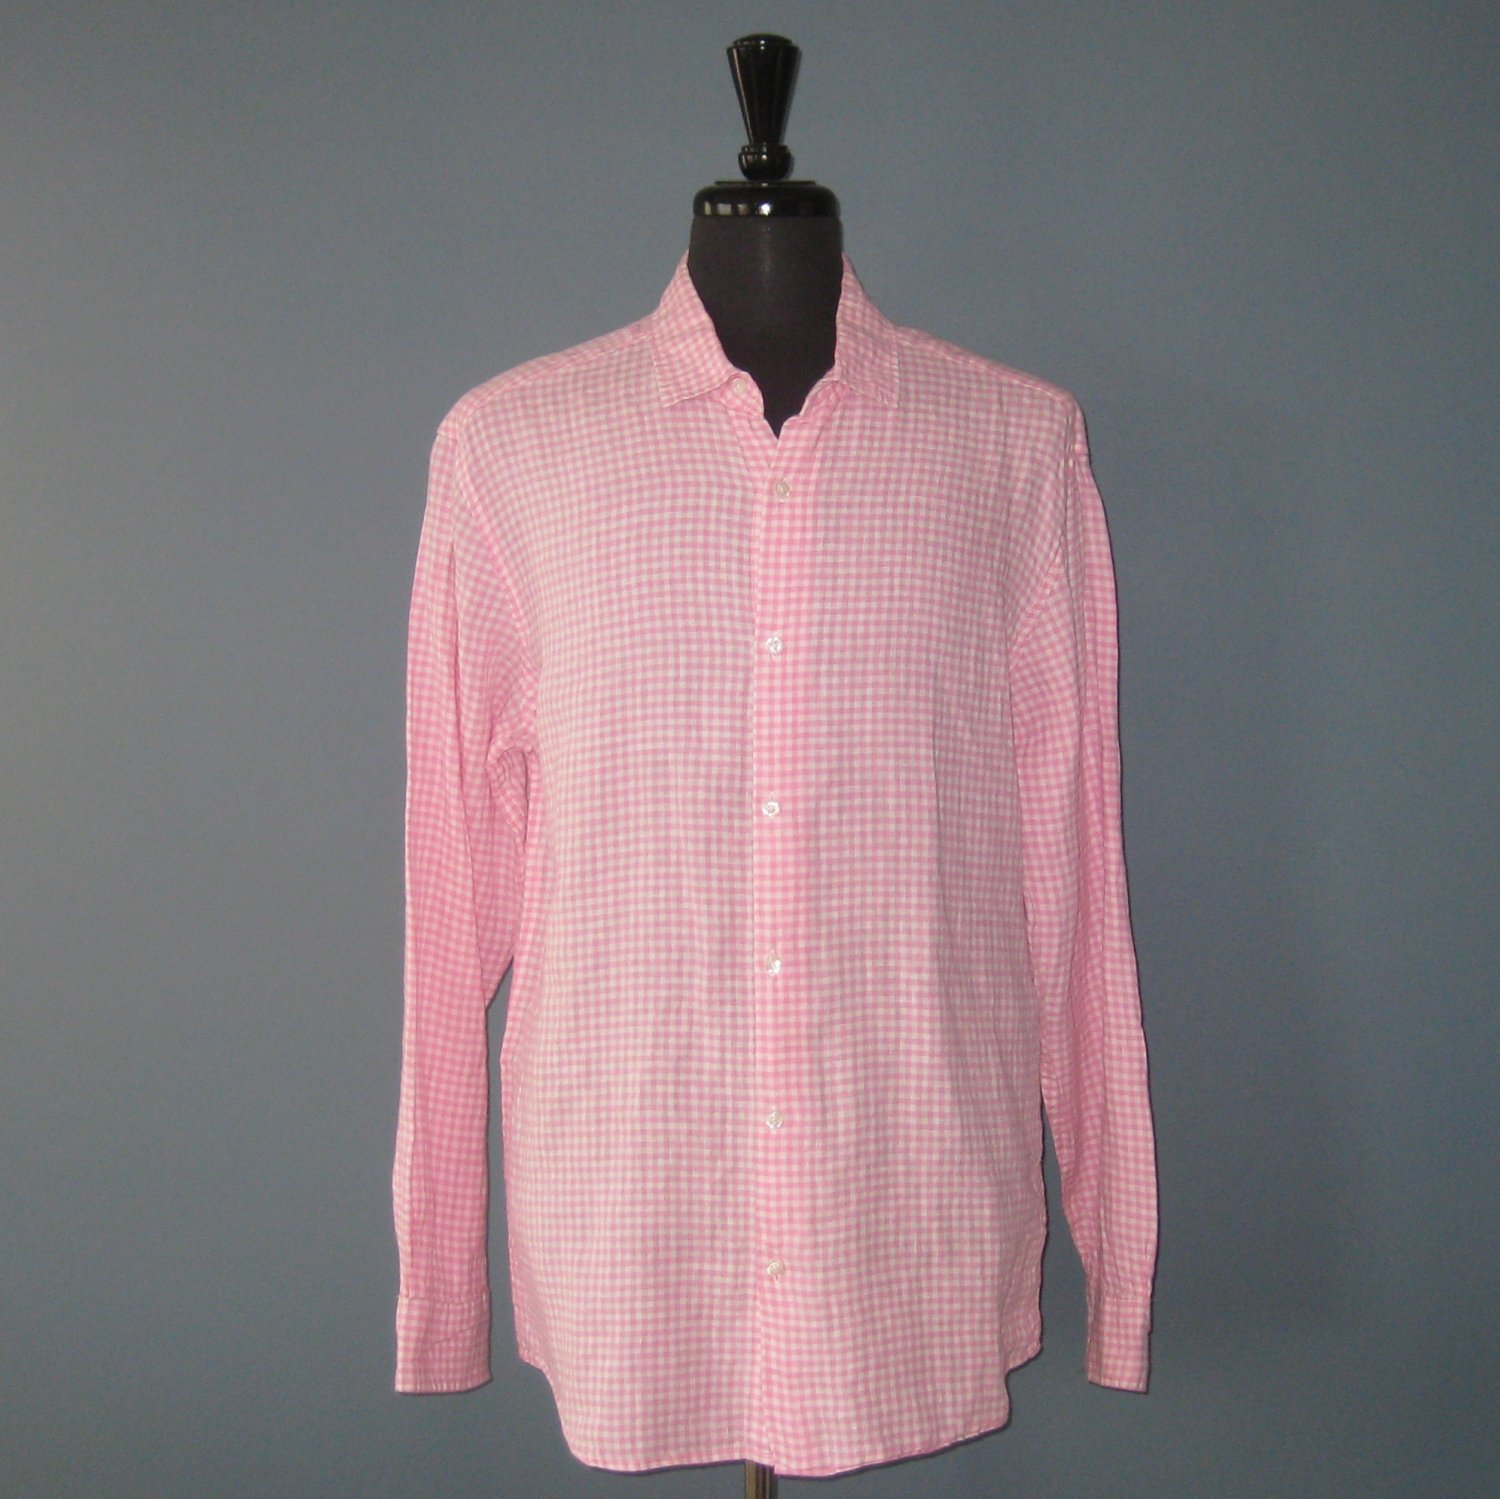 NWT Saks Fifth Avenue 100% Linen Pink & White Check L/S Shirt - XL